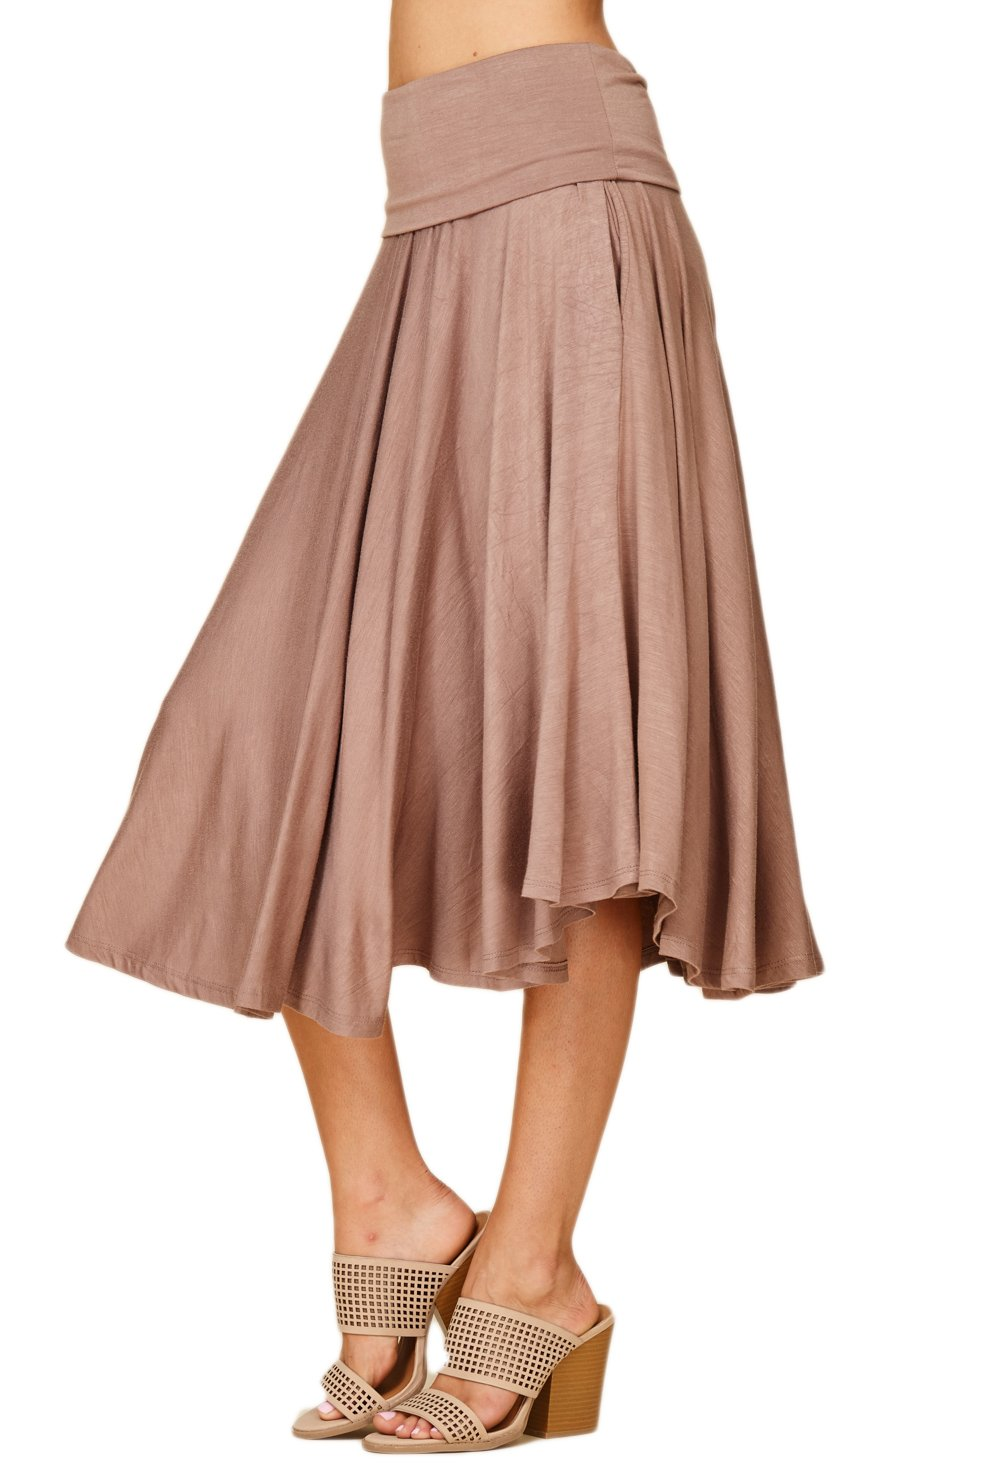 Womens Fold Over Waistband Comfy A Line Flowly Midi Plus Size Skirts with Side Pockets 3X-Large Taupe Grey S9010X